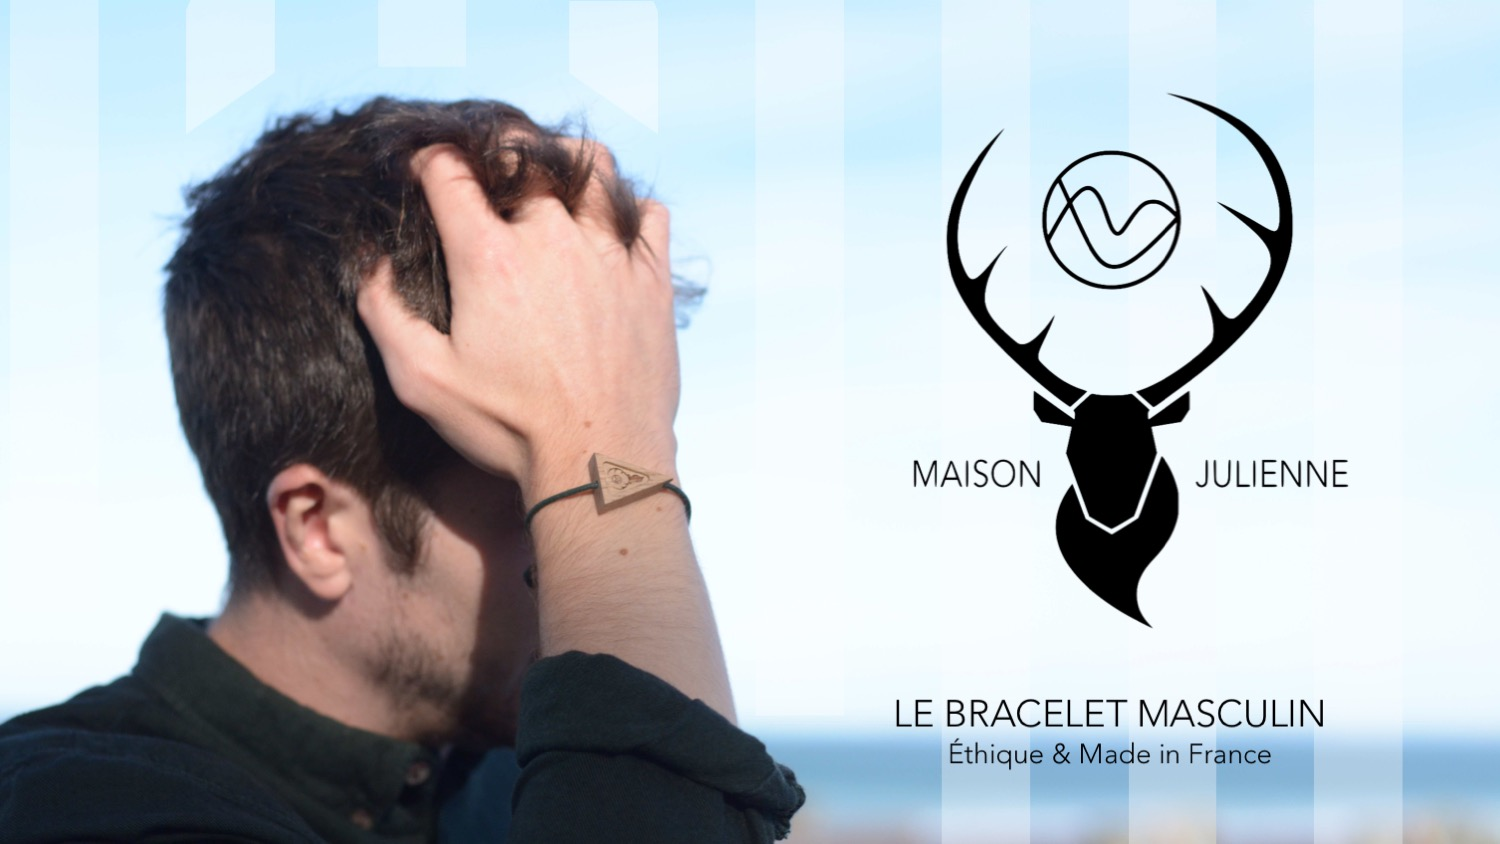 Maison Julienne: A creative ethical fashion brand made in France